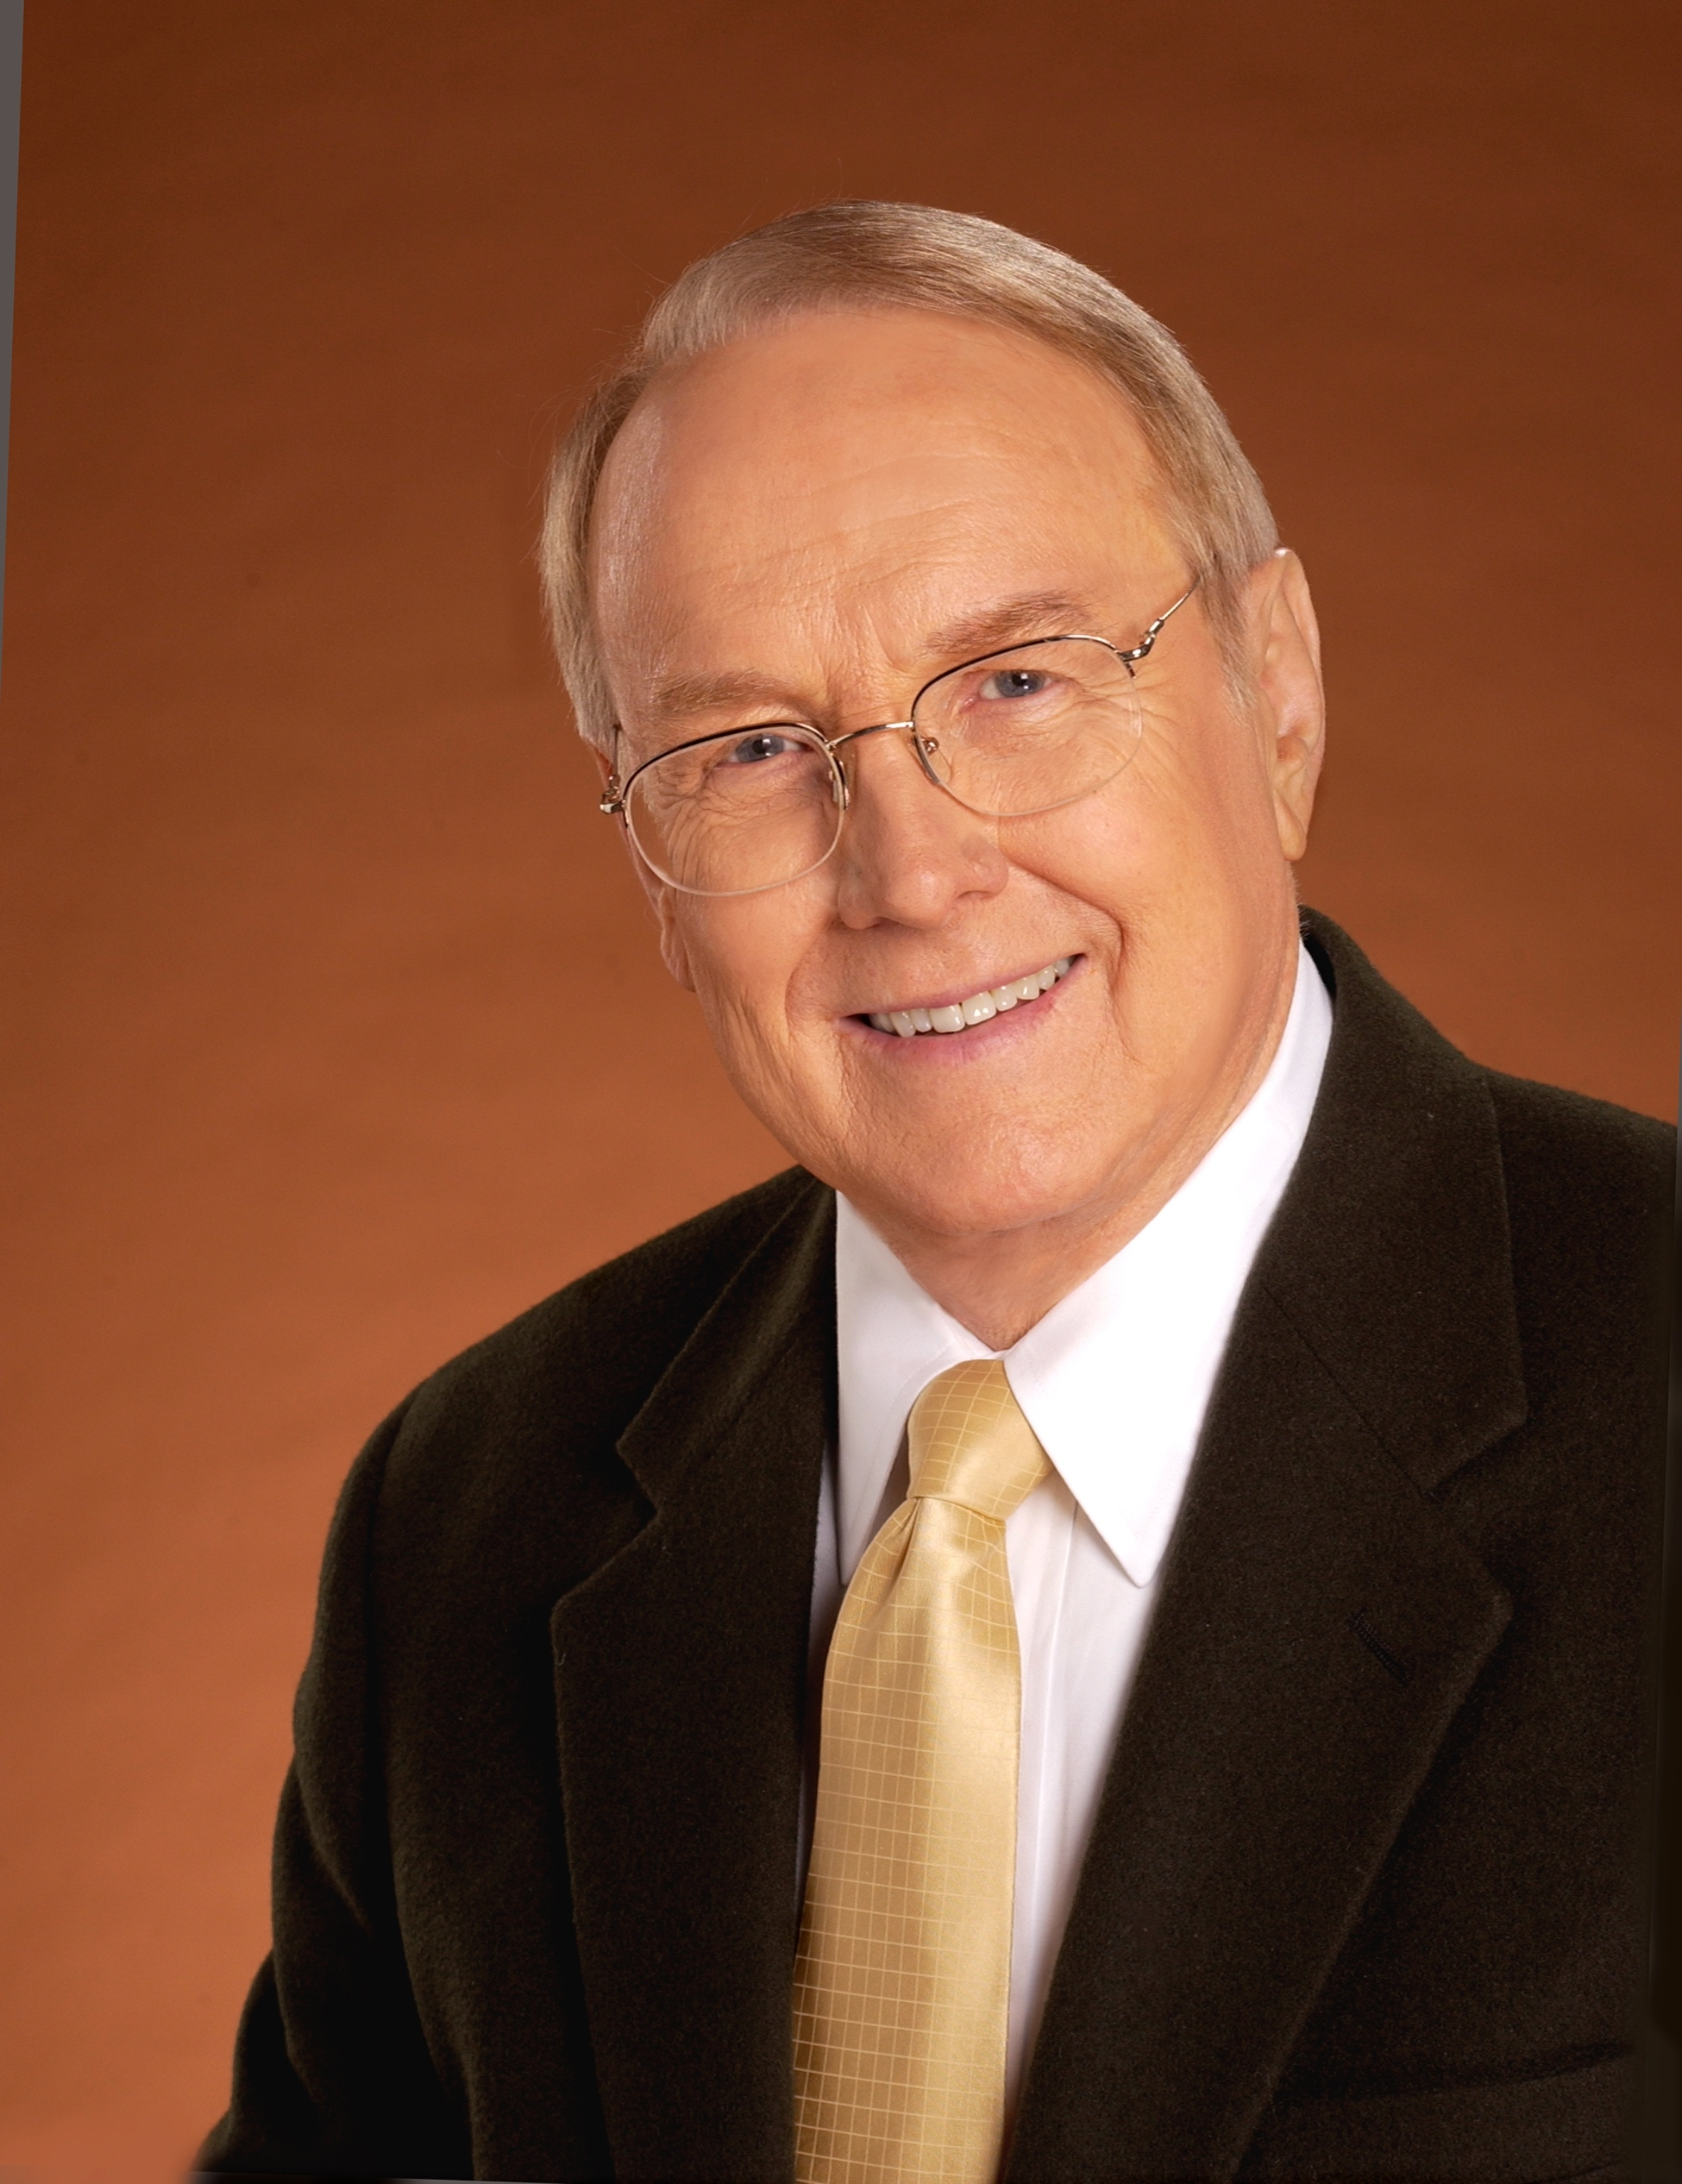 DR. JAMES DOBSON'S STATEMENT — EXACTLY WHO DOES CHRISTIANITY TODAY WANT TO WIN IN 2020?